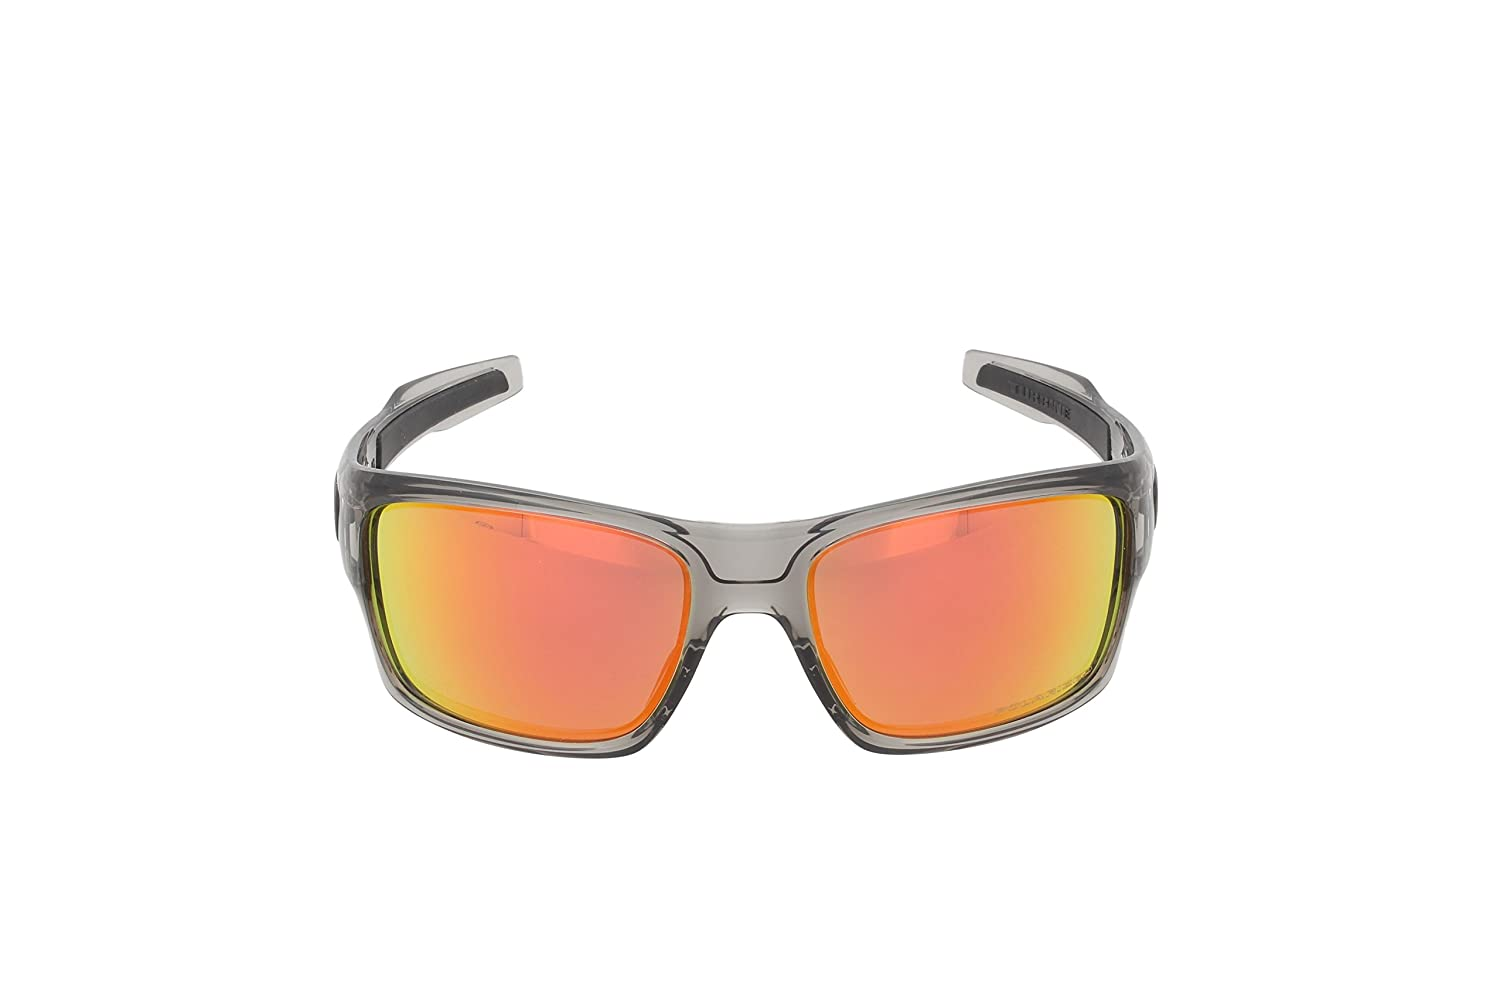 4fa7c06945 Amazon.com  Oakley Mens Turbine Active Sunglasses One Size Grey Ink Ruby  Iridium Polarized  Oakley  Clothing